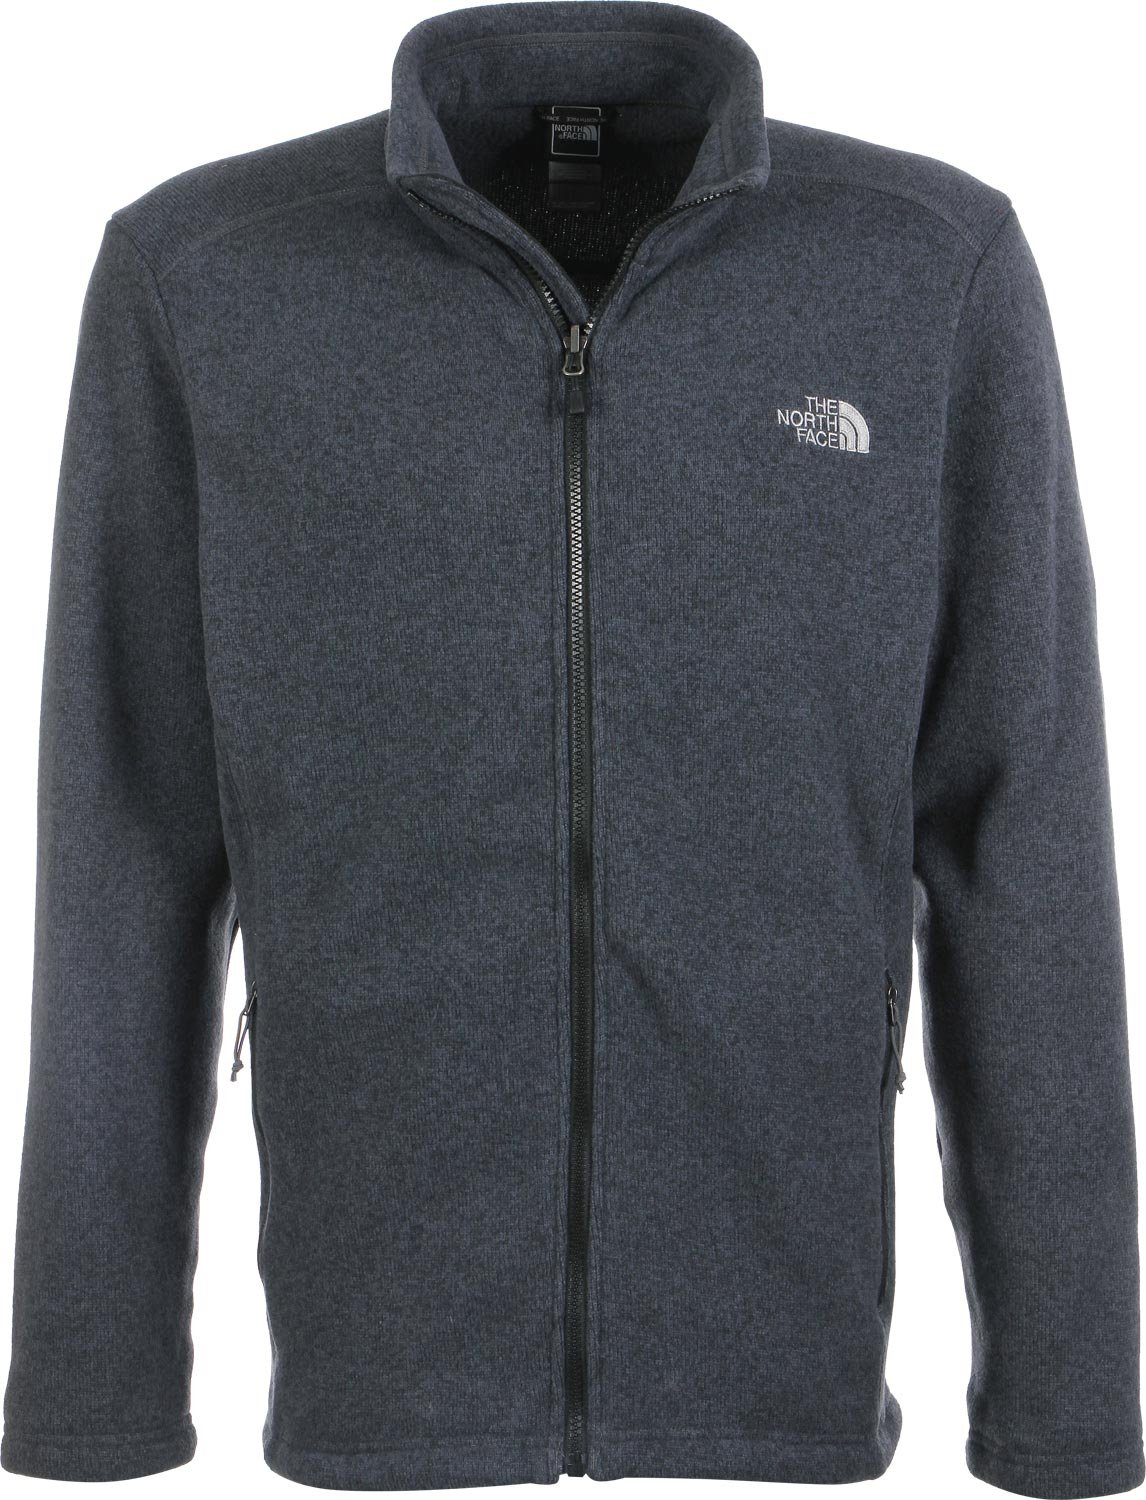 7a7a69536 THE NORTH FACE Men's All Terrain Triclimate GTX 3 in 1 Jacket ...